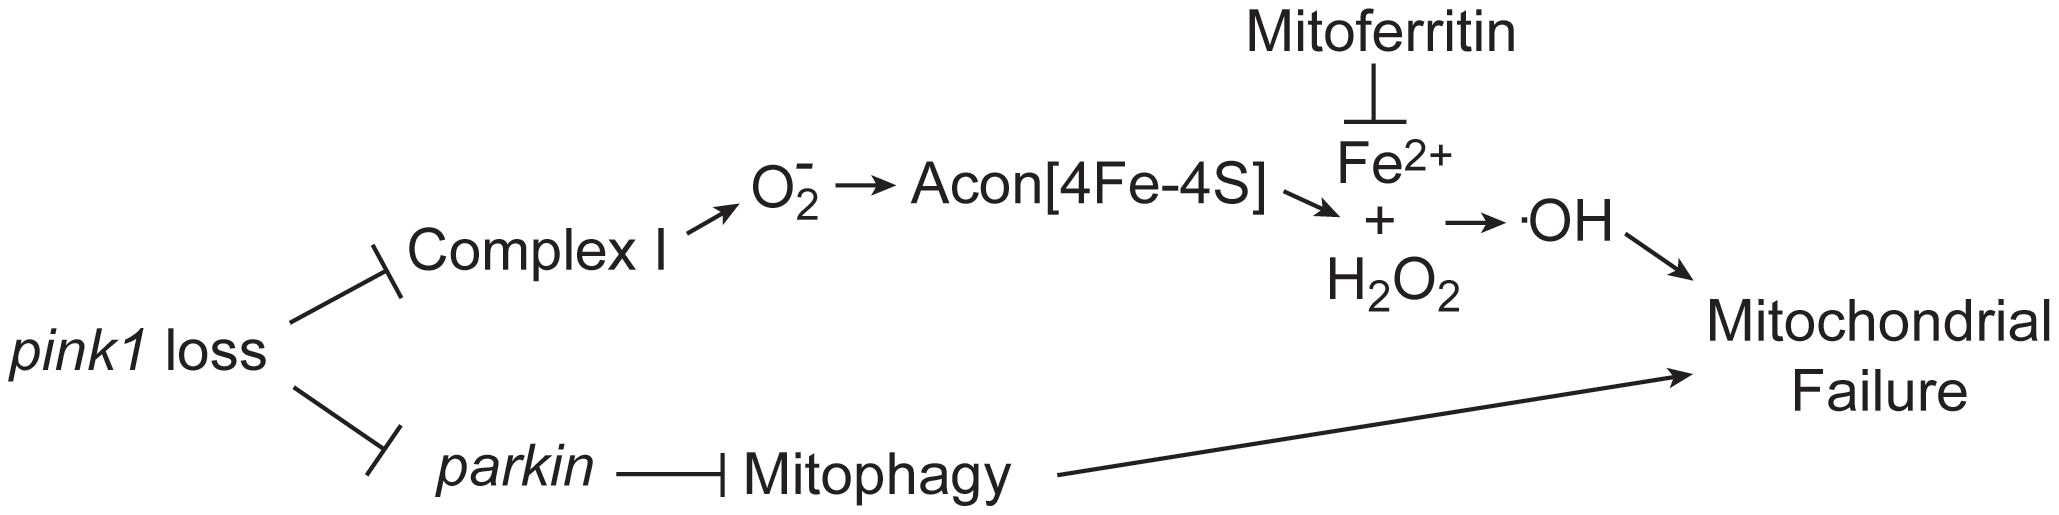 Model of oxidative Acon inactivation in <i>pink1</i> mutants.